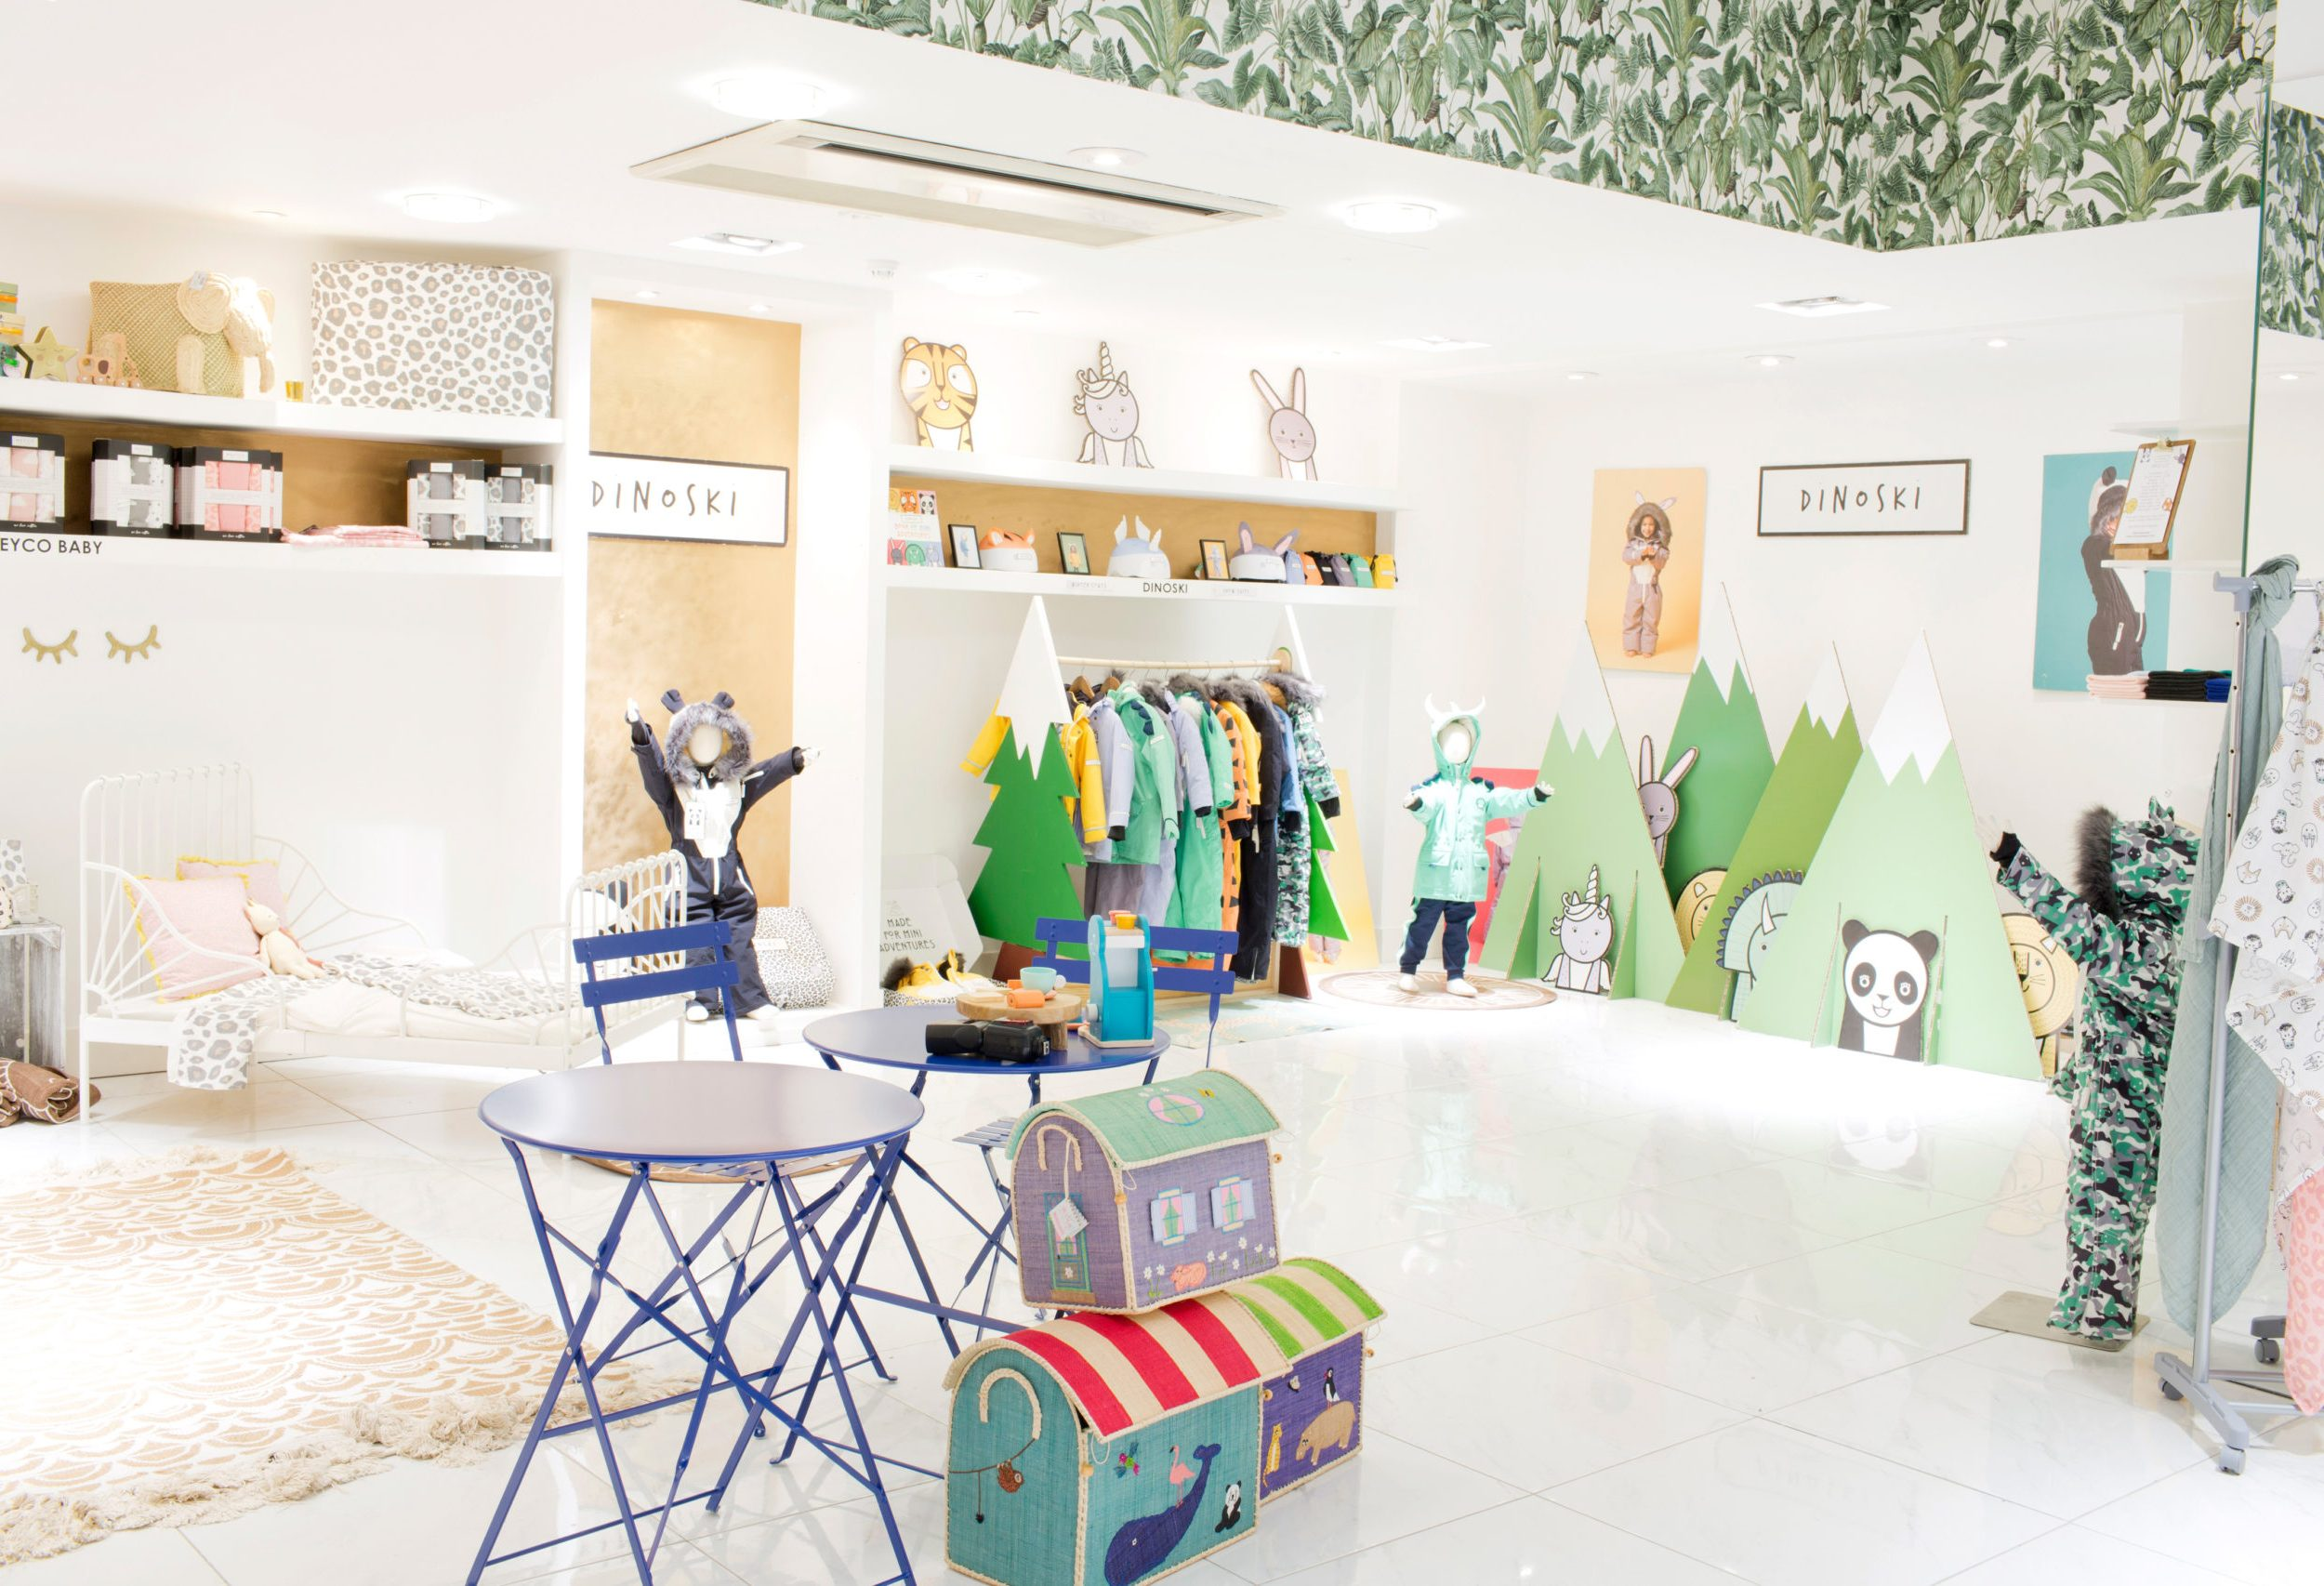 Interior of children's shop with table and chairs and products